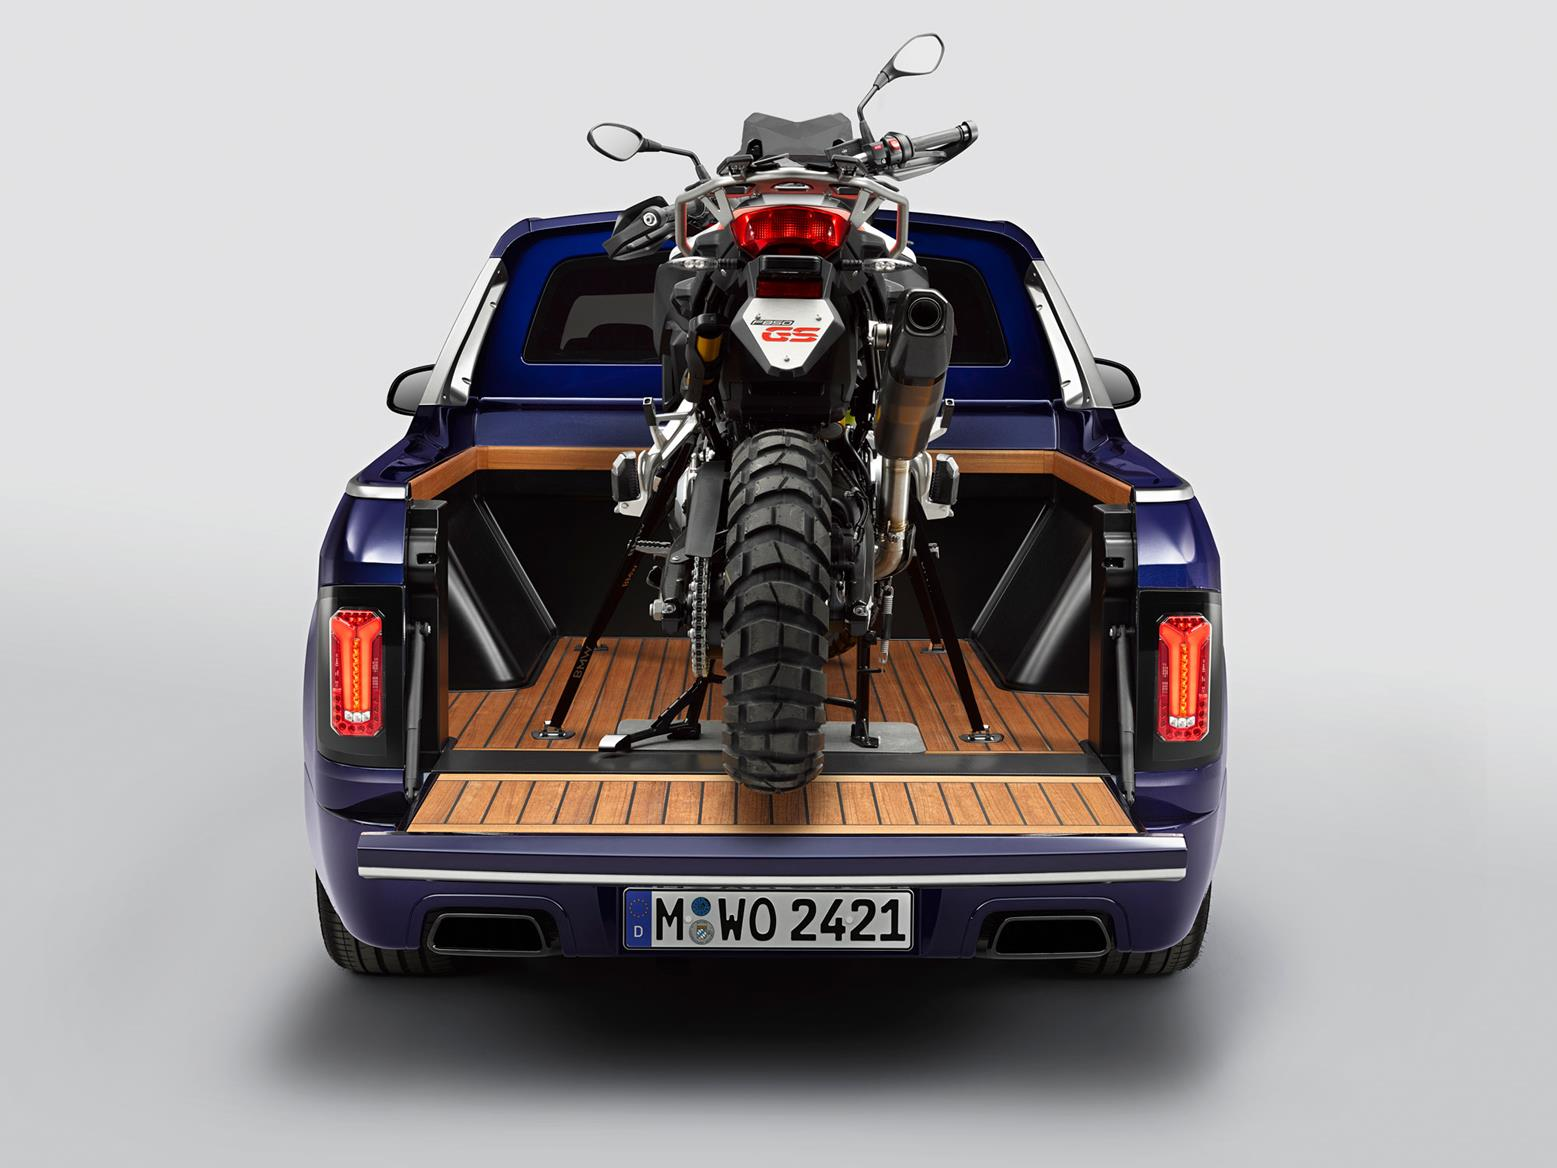 Rear view of the F 850 GS Sport on the back of the BMW X7 pickup